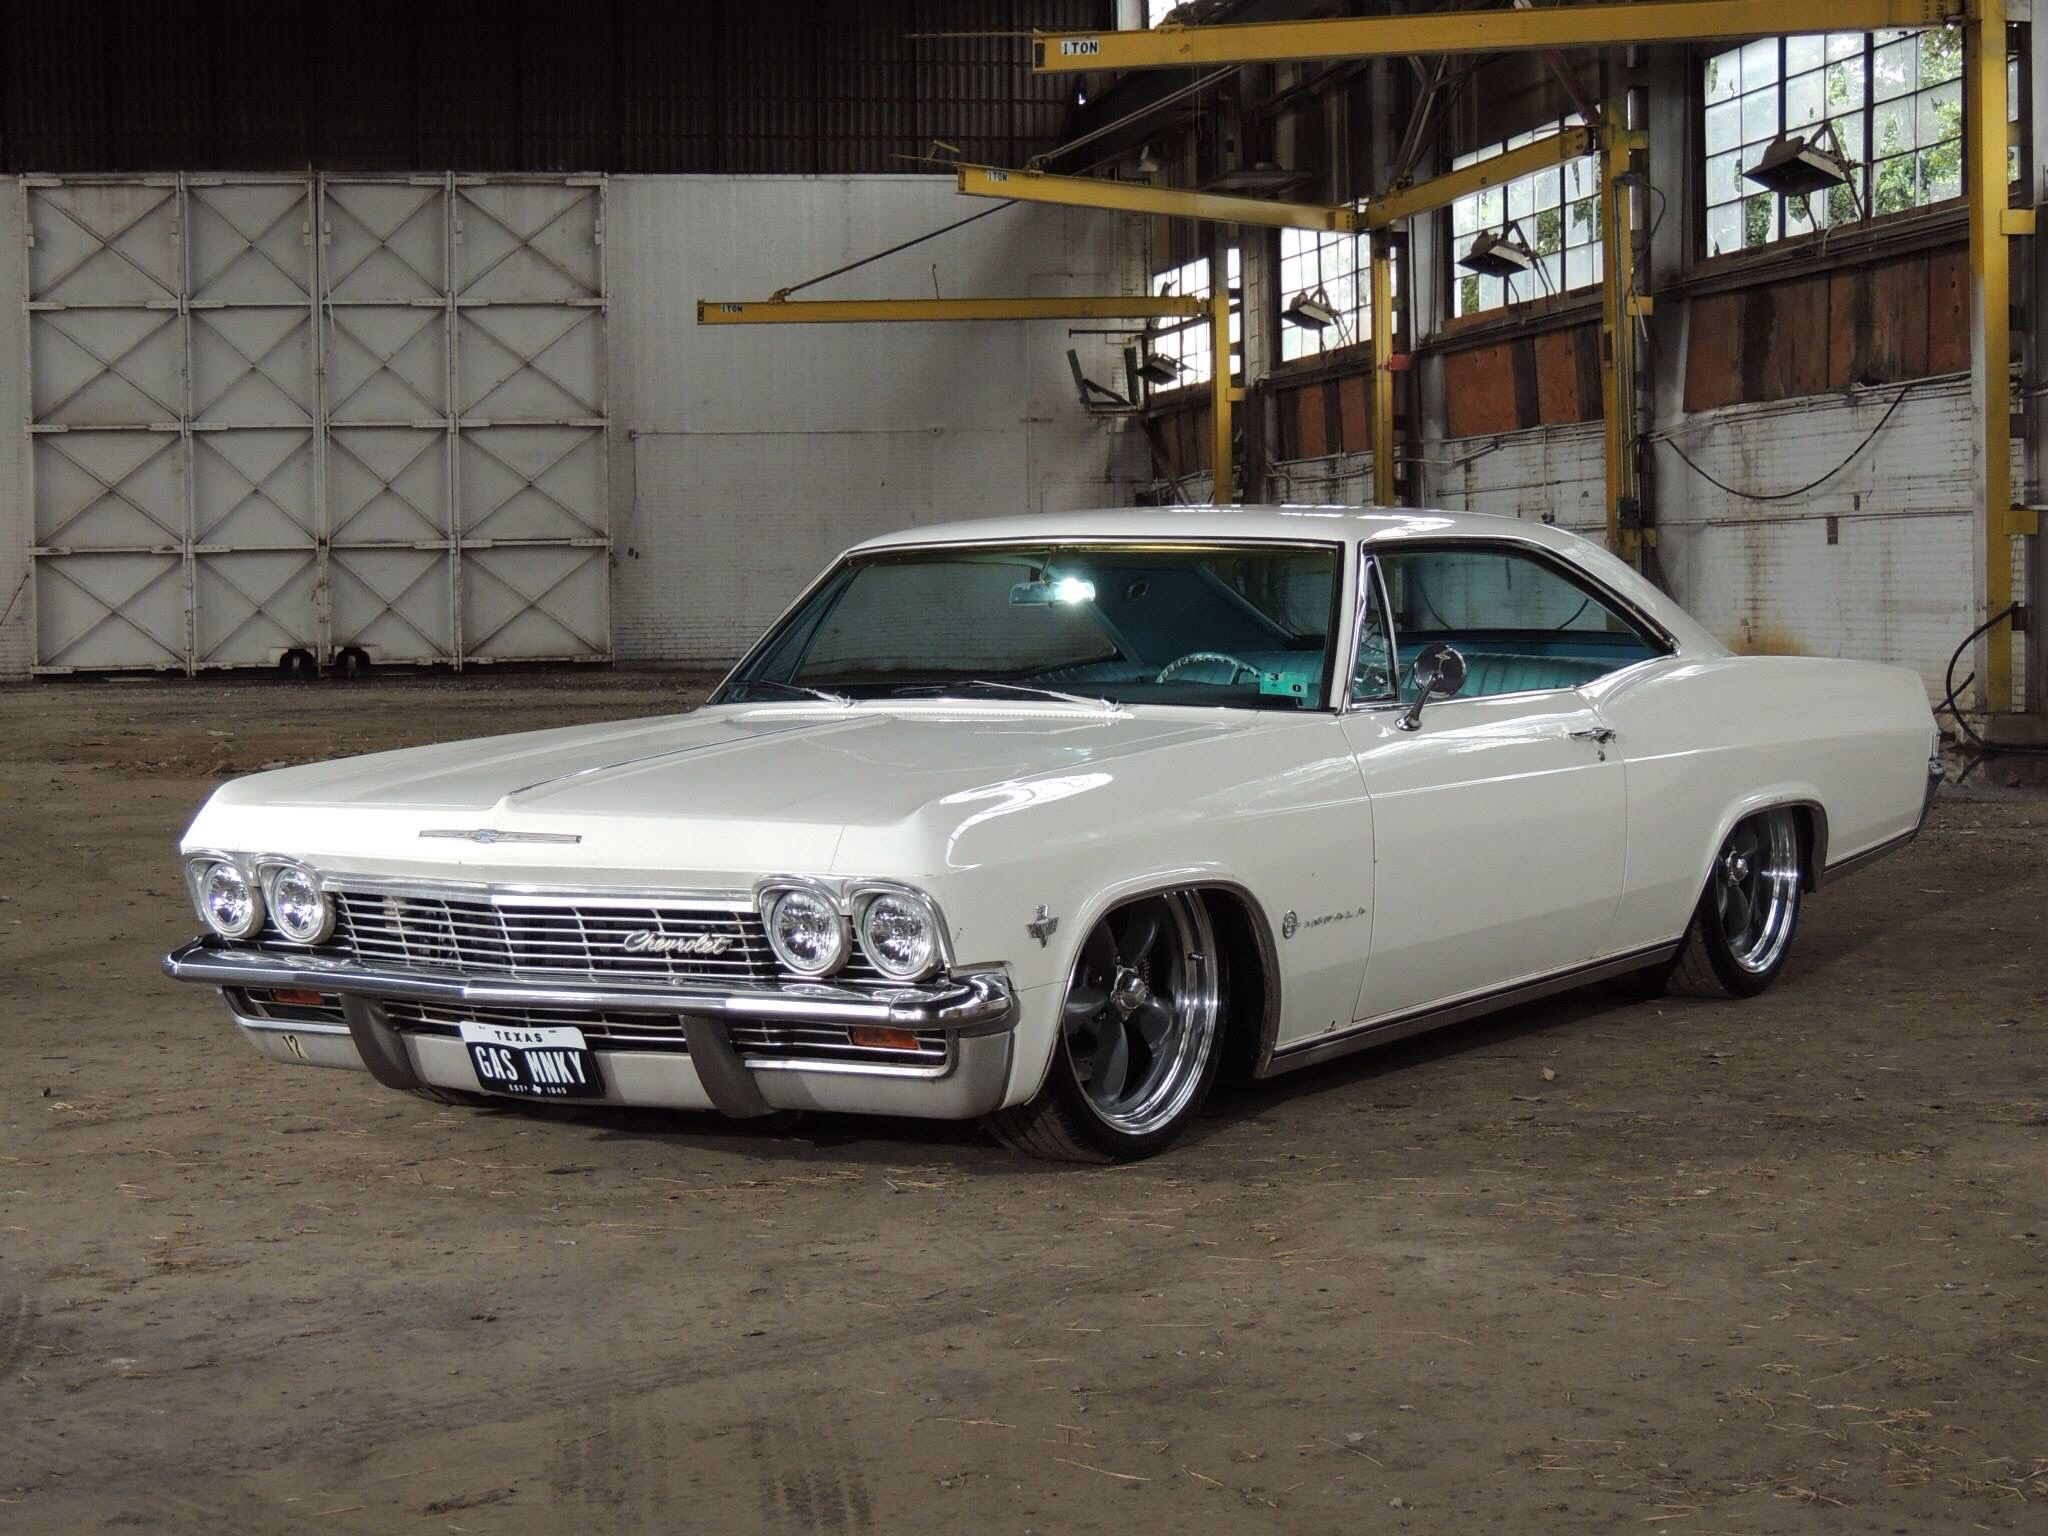 65 Chevy Impala Hot Rods Cars Muscle Classic Cars Muscle Cars